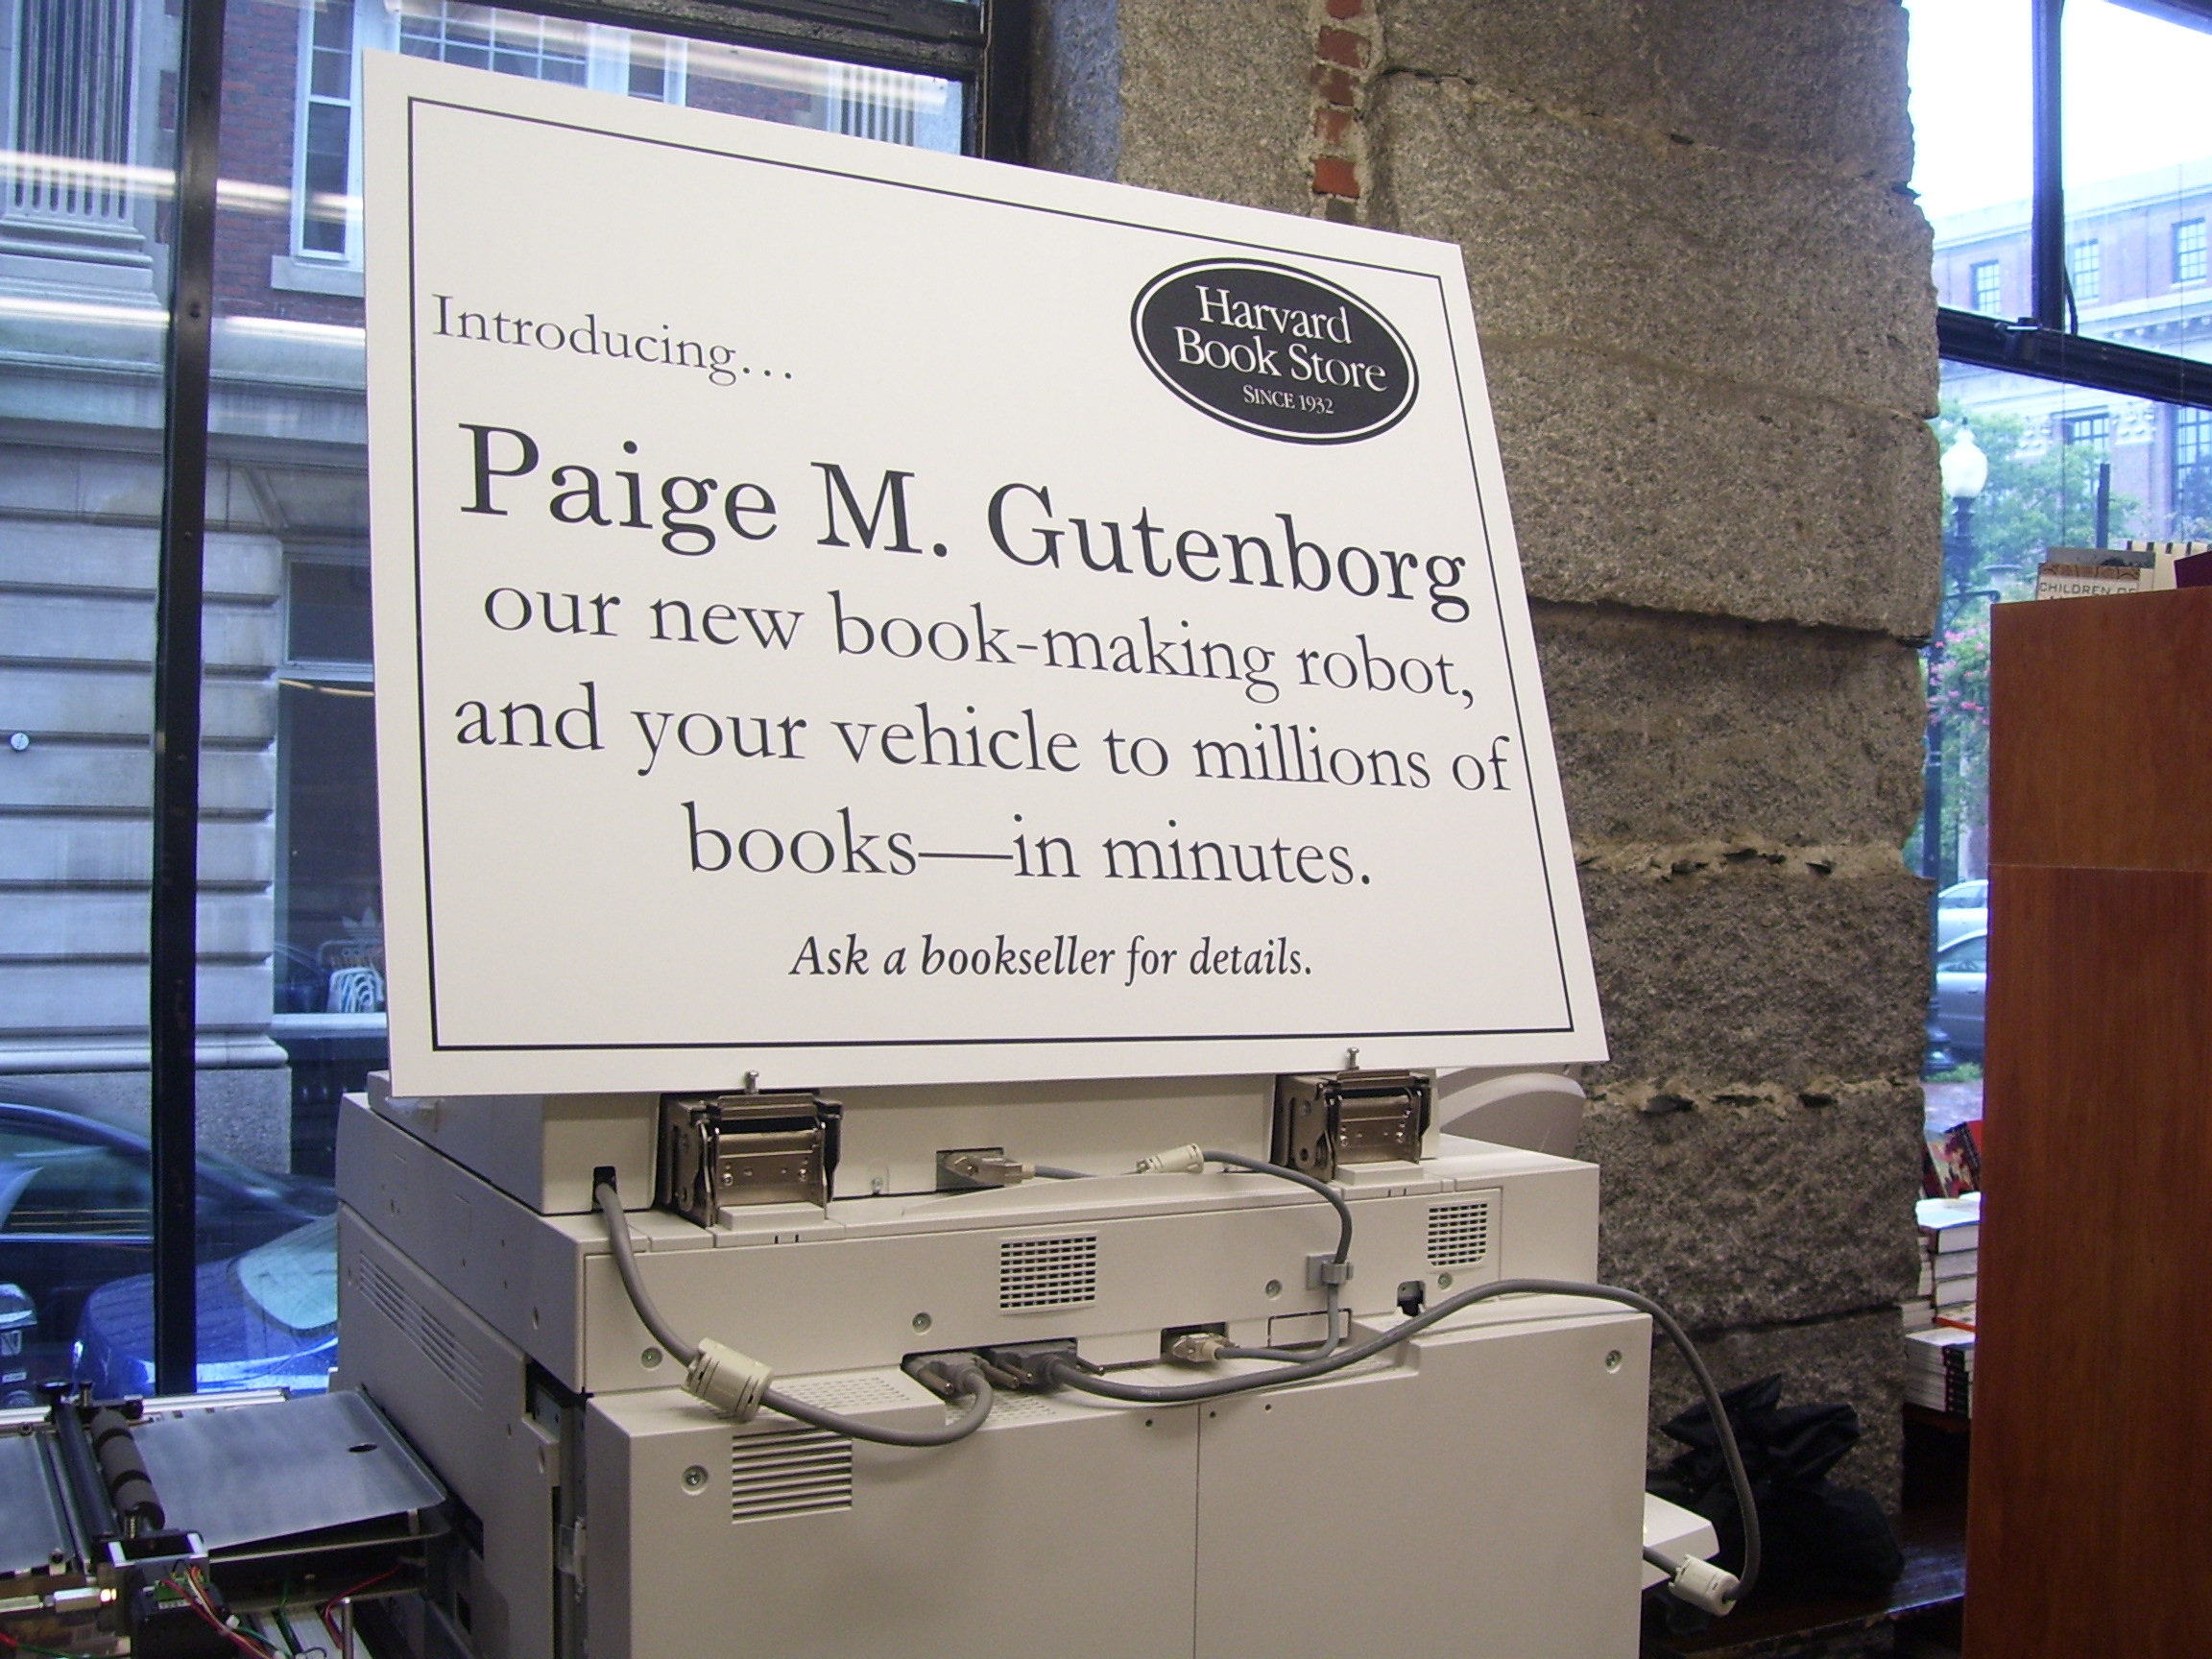 paige_m_gutenborg_introduction_about_poster